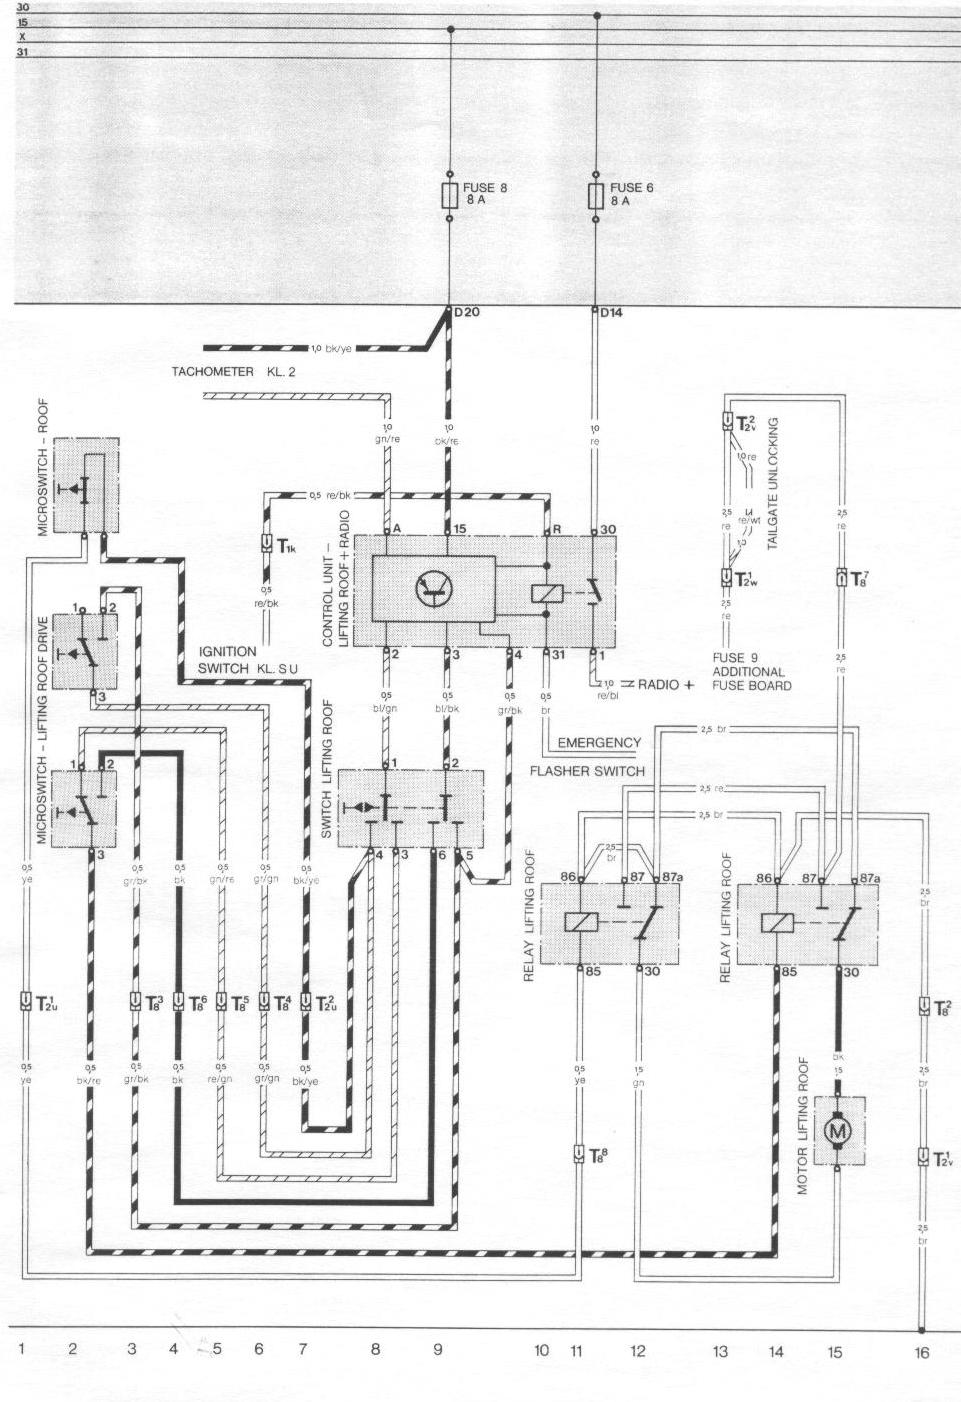 porsche 968 wiring diagrams circuit diagram symbols u2022 rh armkandy co porsche 944 wiring diagram pdf porsche 944 wiring diagram pdf